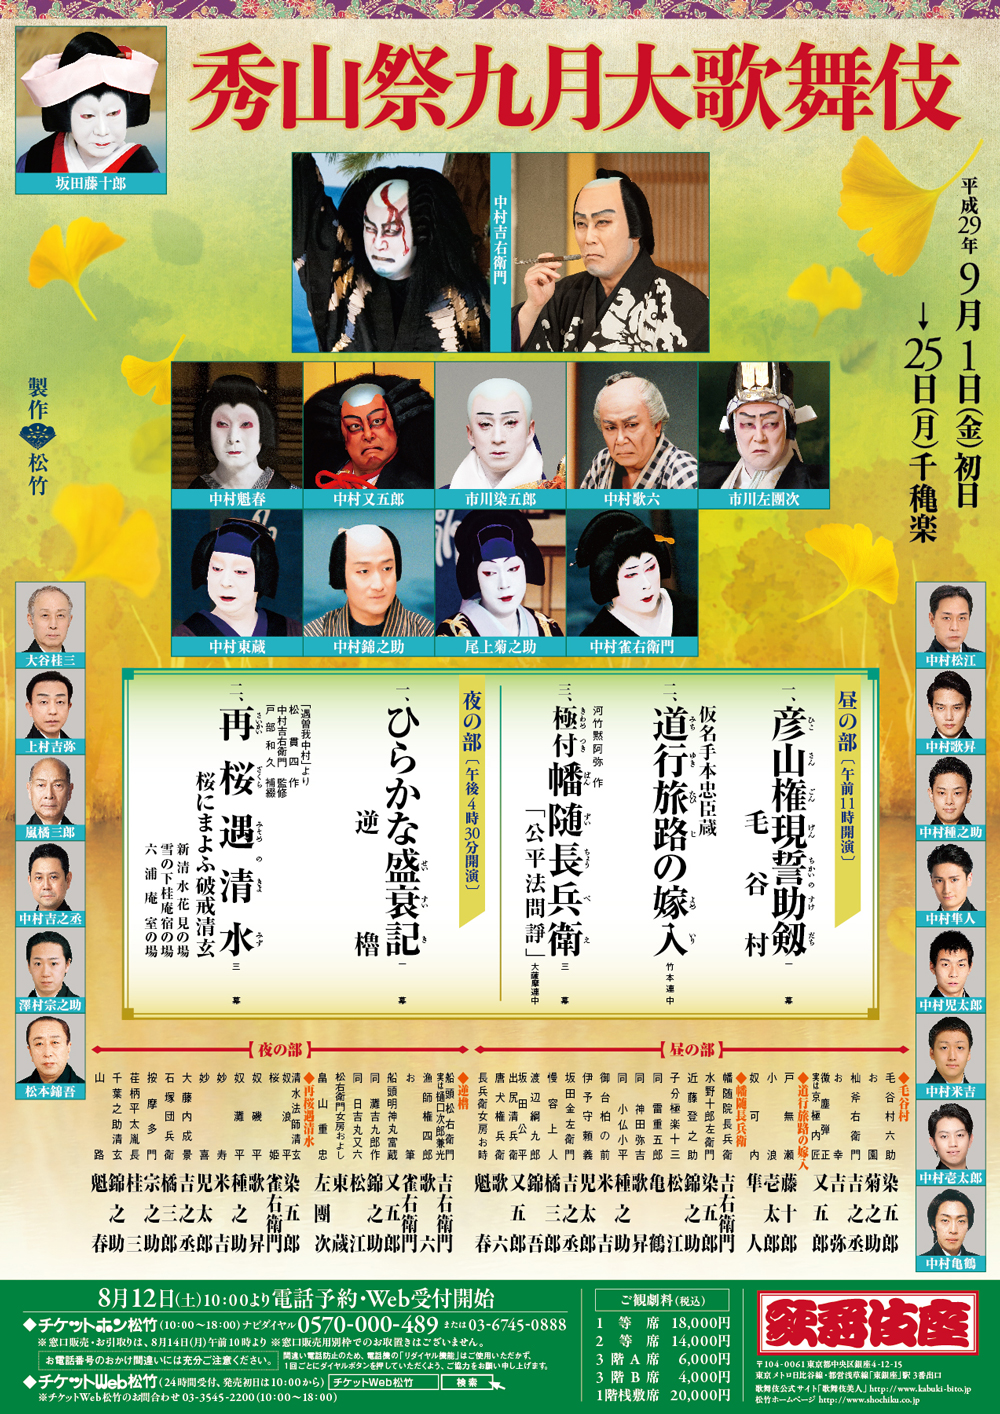 September at the Kabukiza Theatre